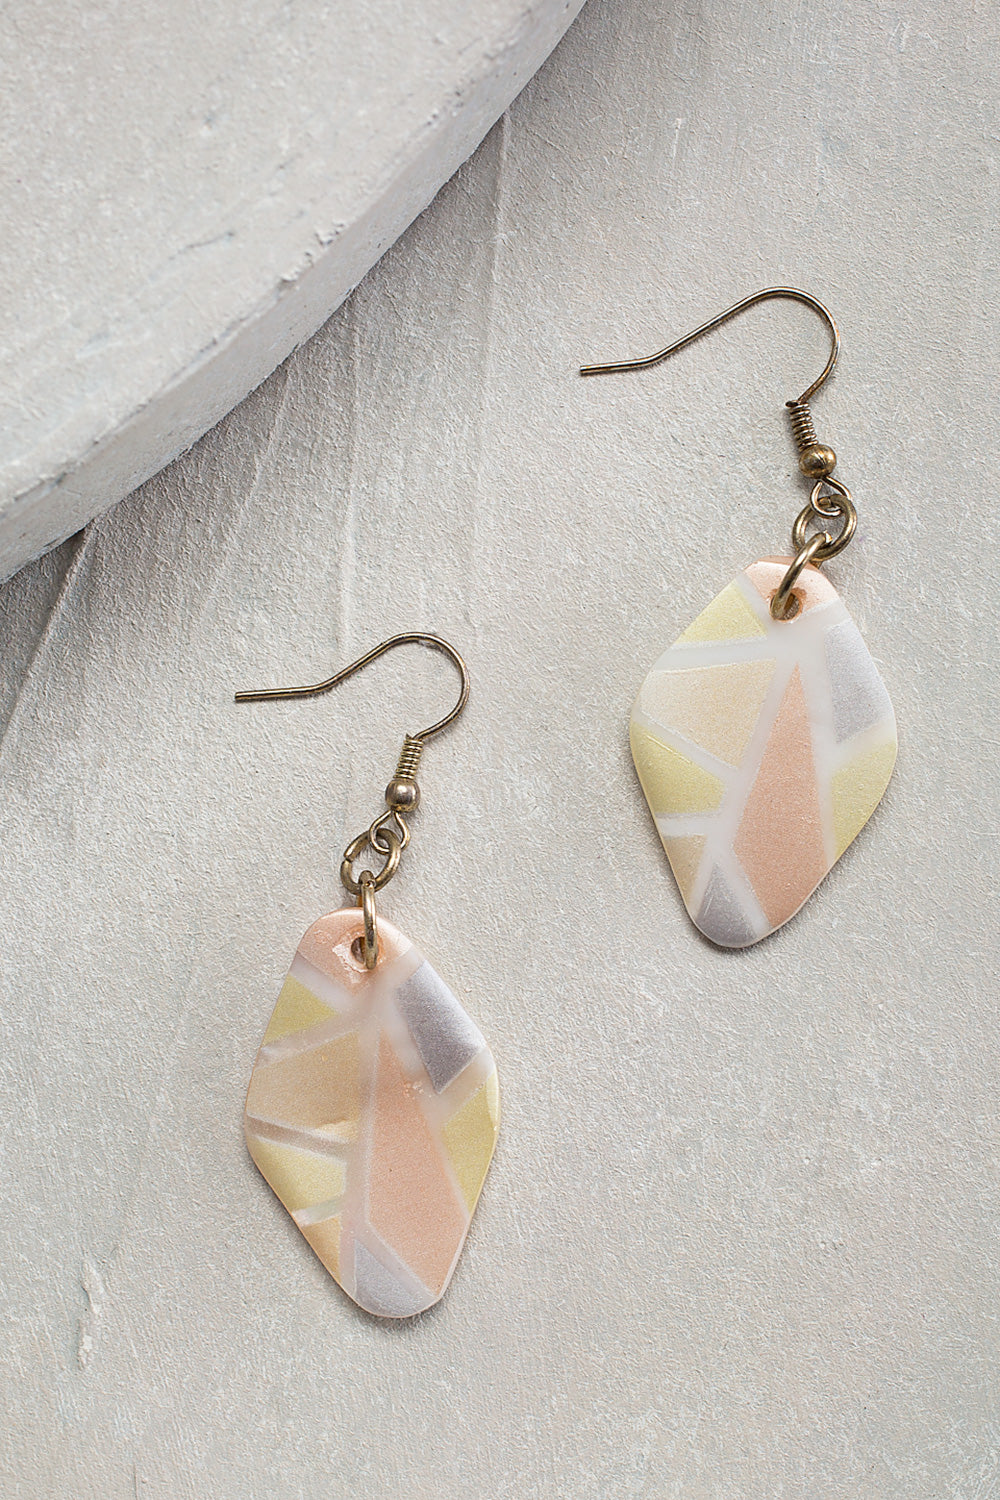 Type 2 Sea Clearly Earrings